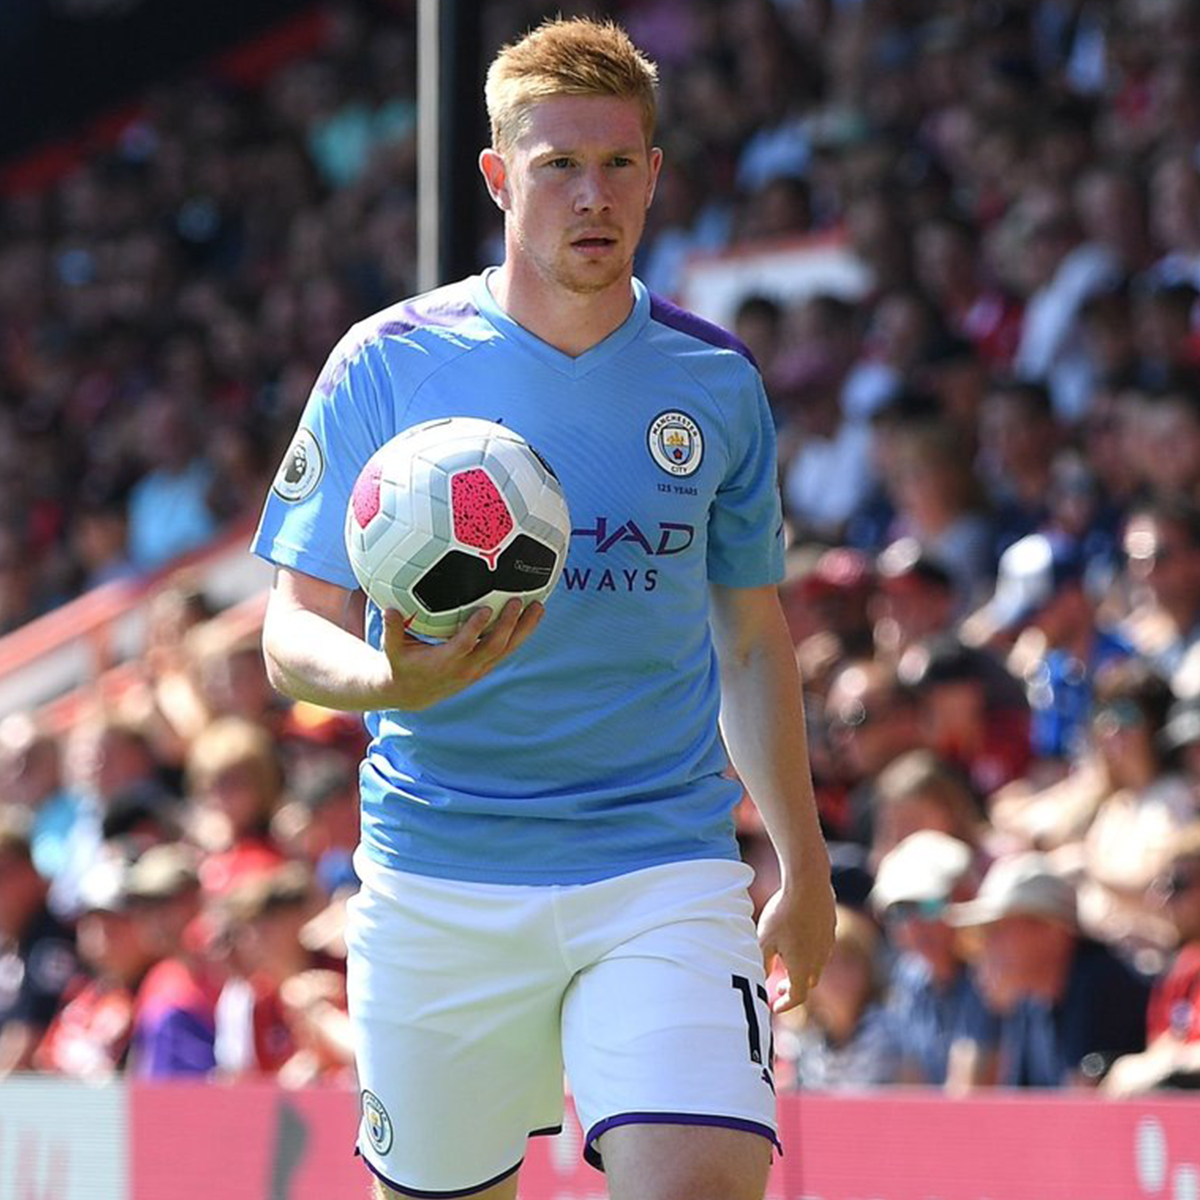 Kevin De Bruyne is now the fastest player ever to reach 50 Premier League assists